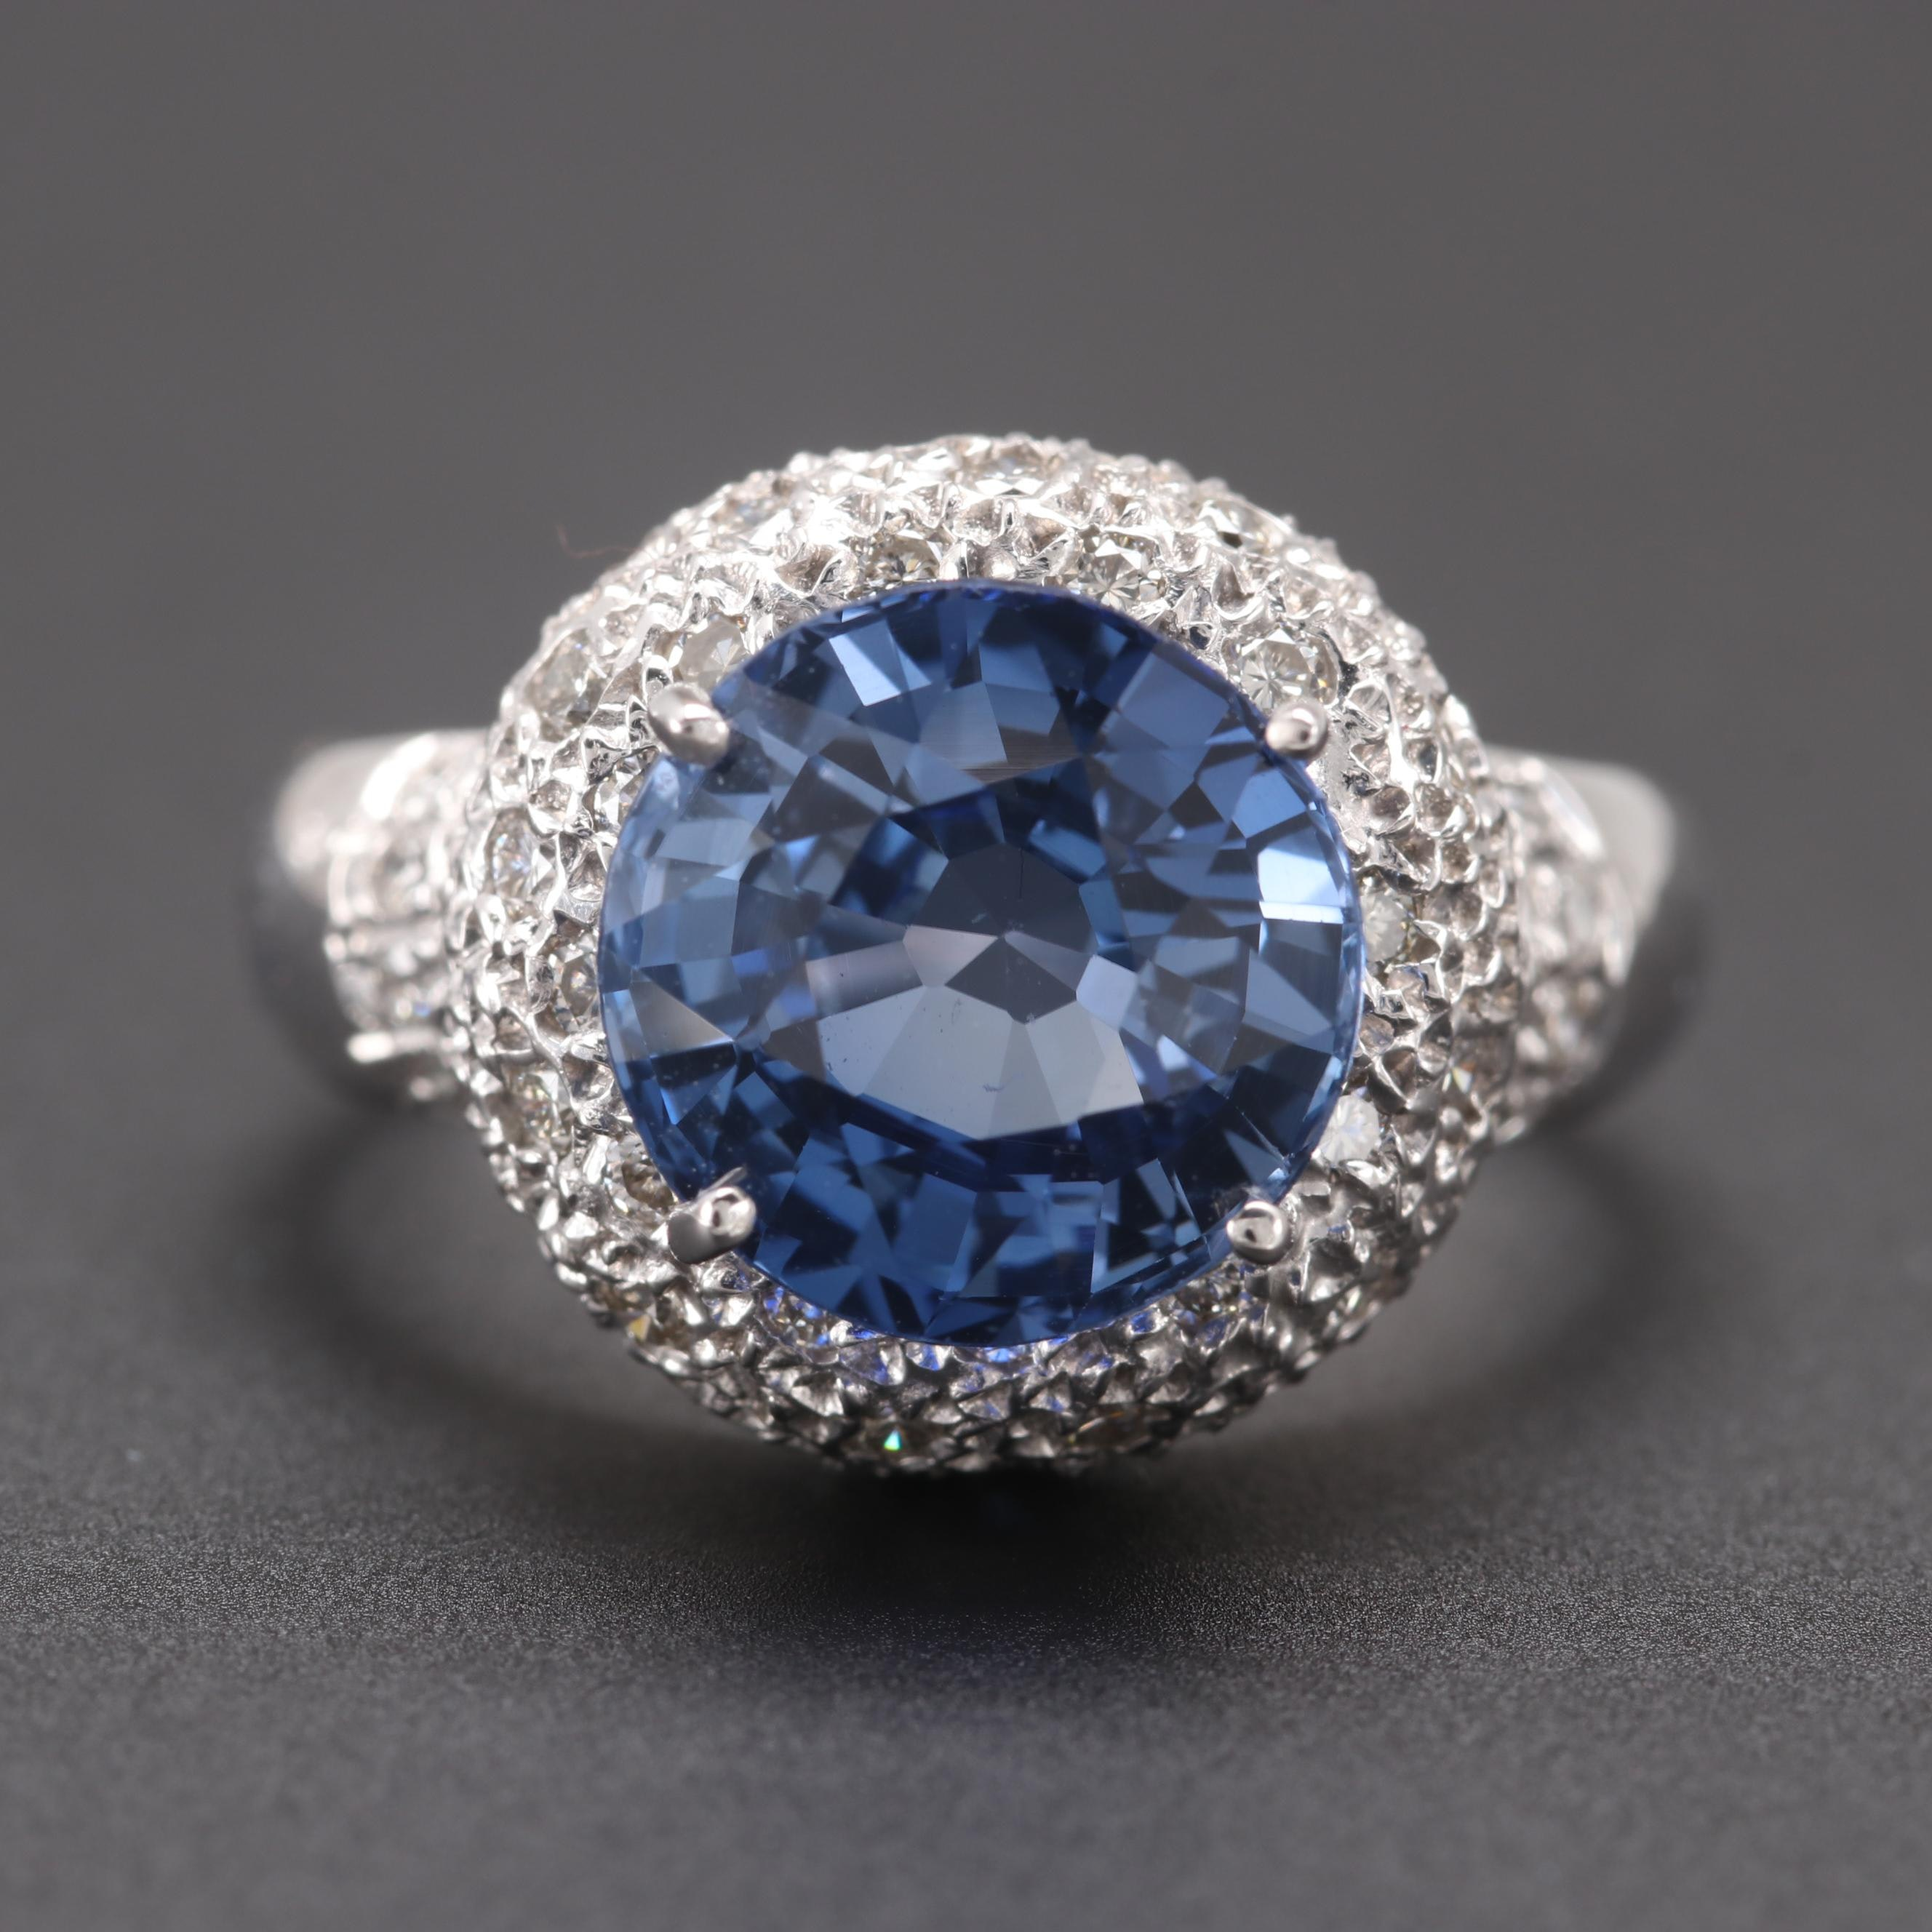 14K White Gold Synthetic Sapphire and Diamond Ring